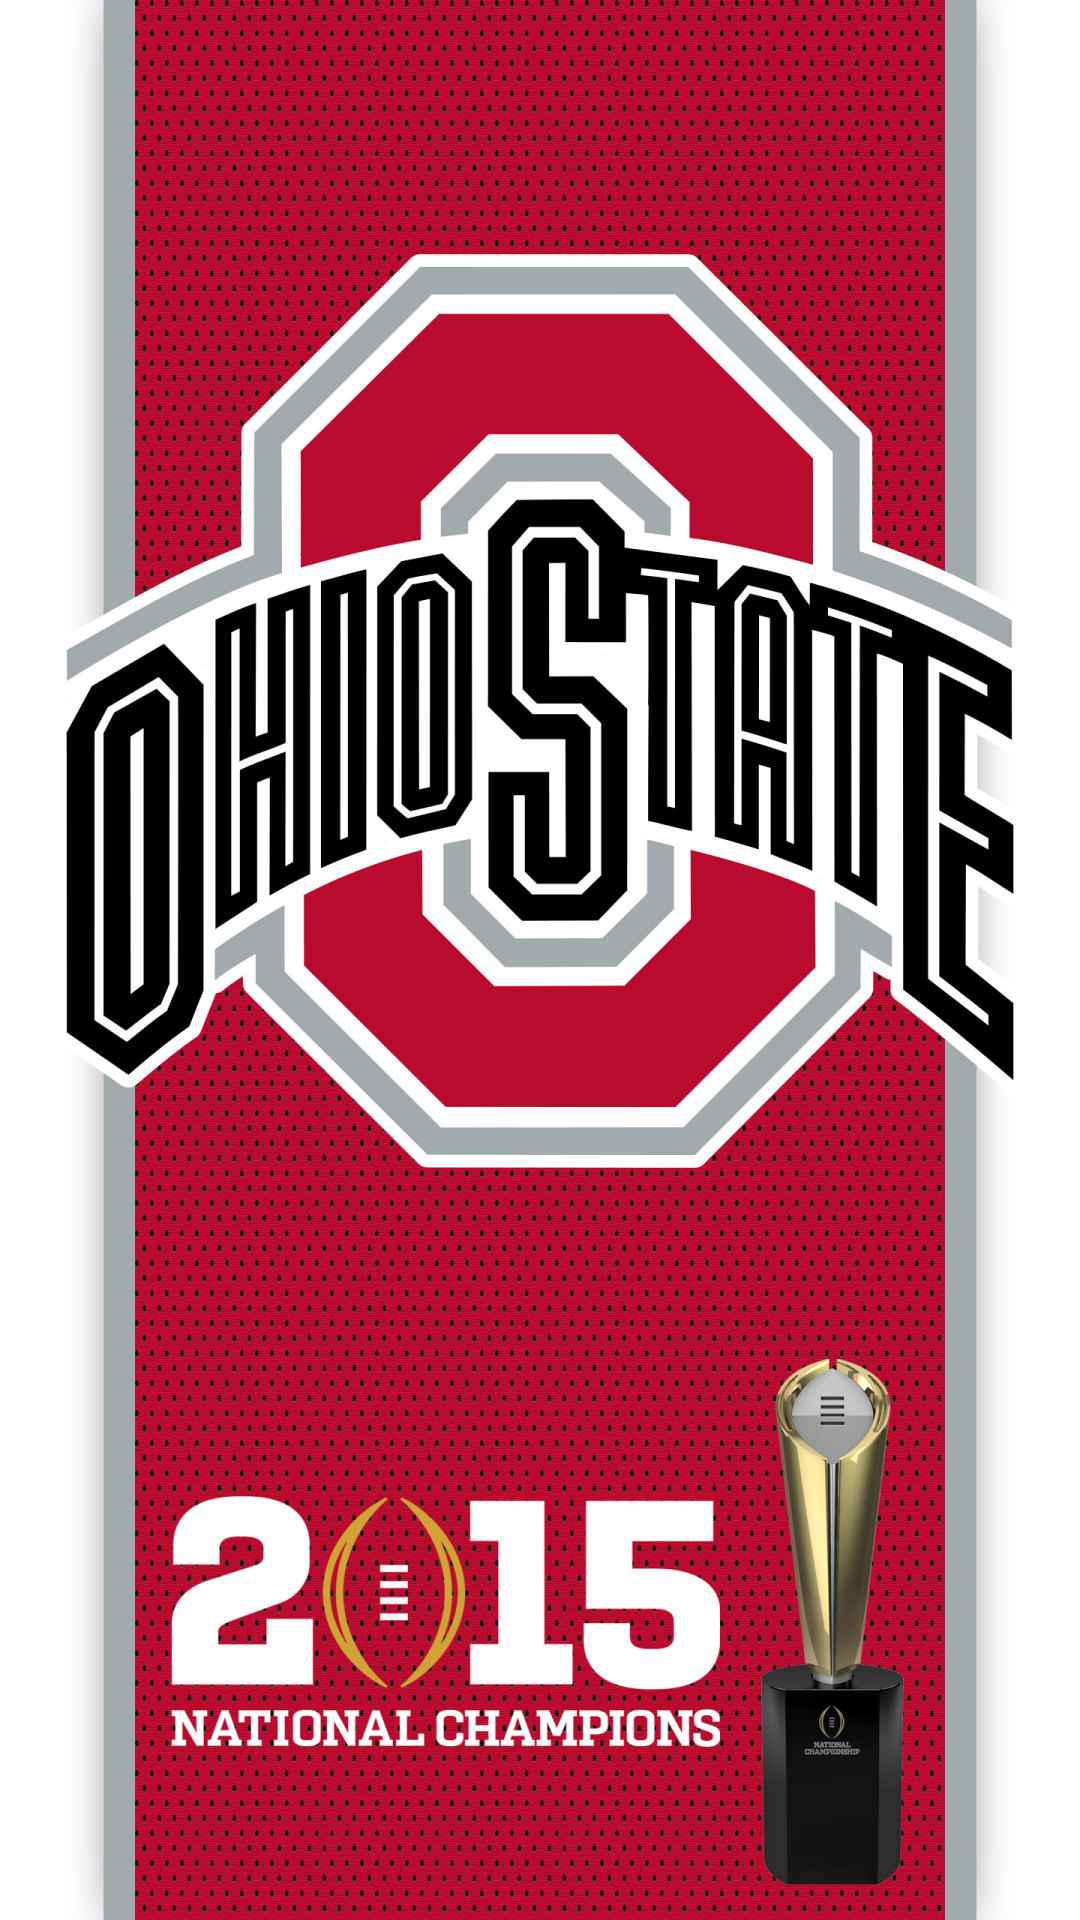 Ohio State Buckeyes Wallpaper Iphone 1080x1920 Wallpaper Teahub Io